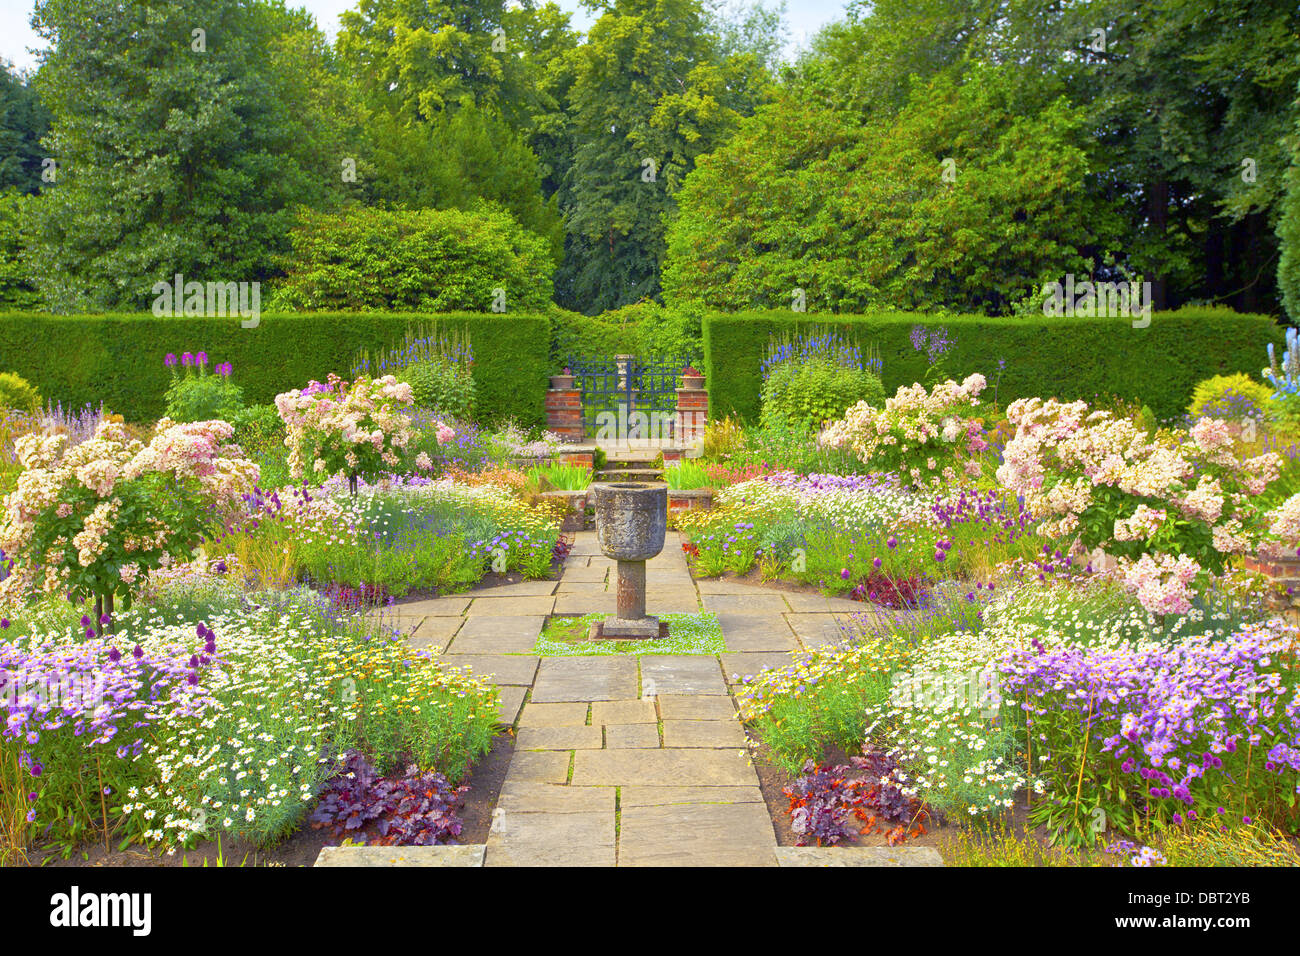 Flagged English summer garden with stone vase ornament. Stock Photo